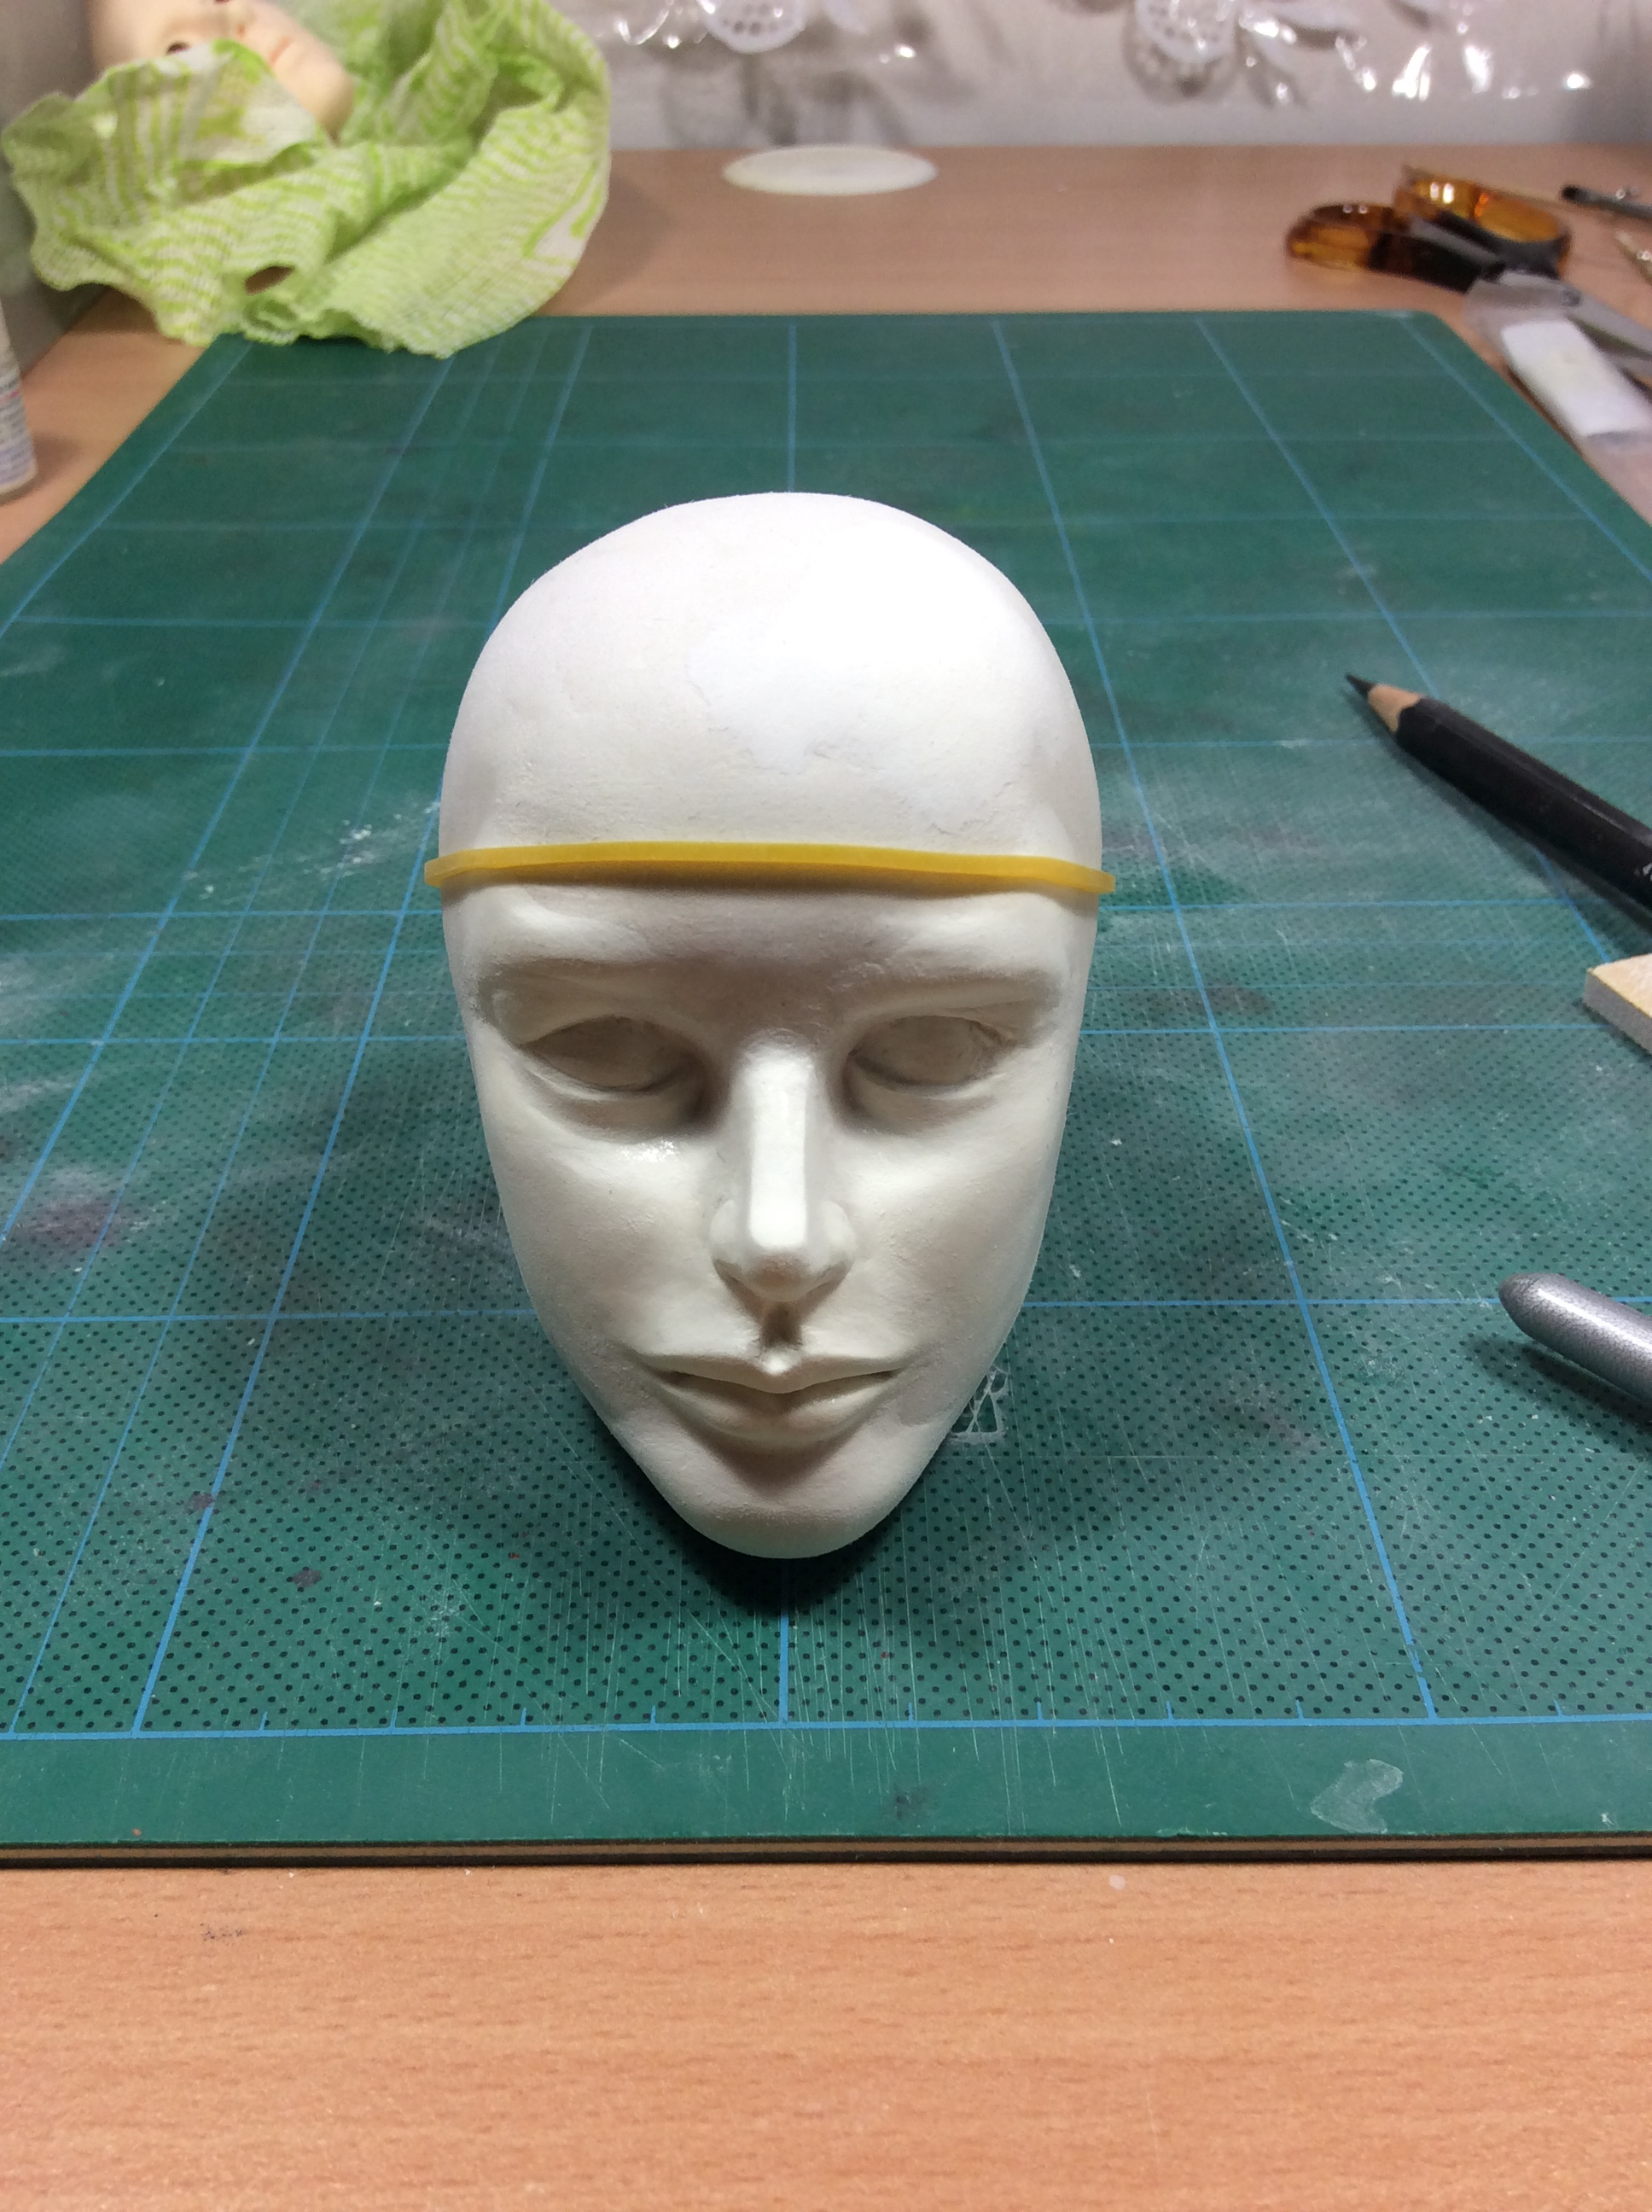 jemse---my-first-doll-head-making-progress-diary-part-3_32374294216_o